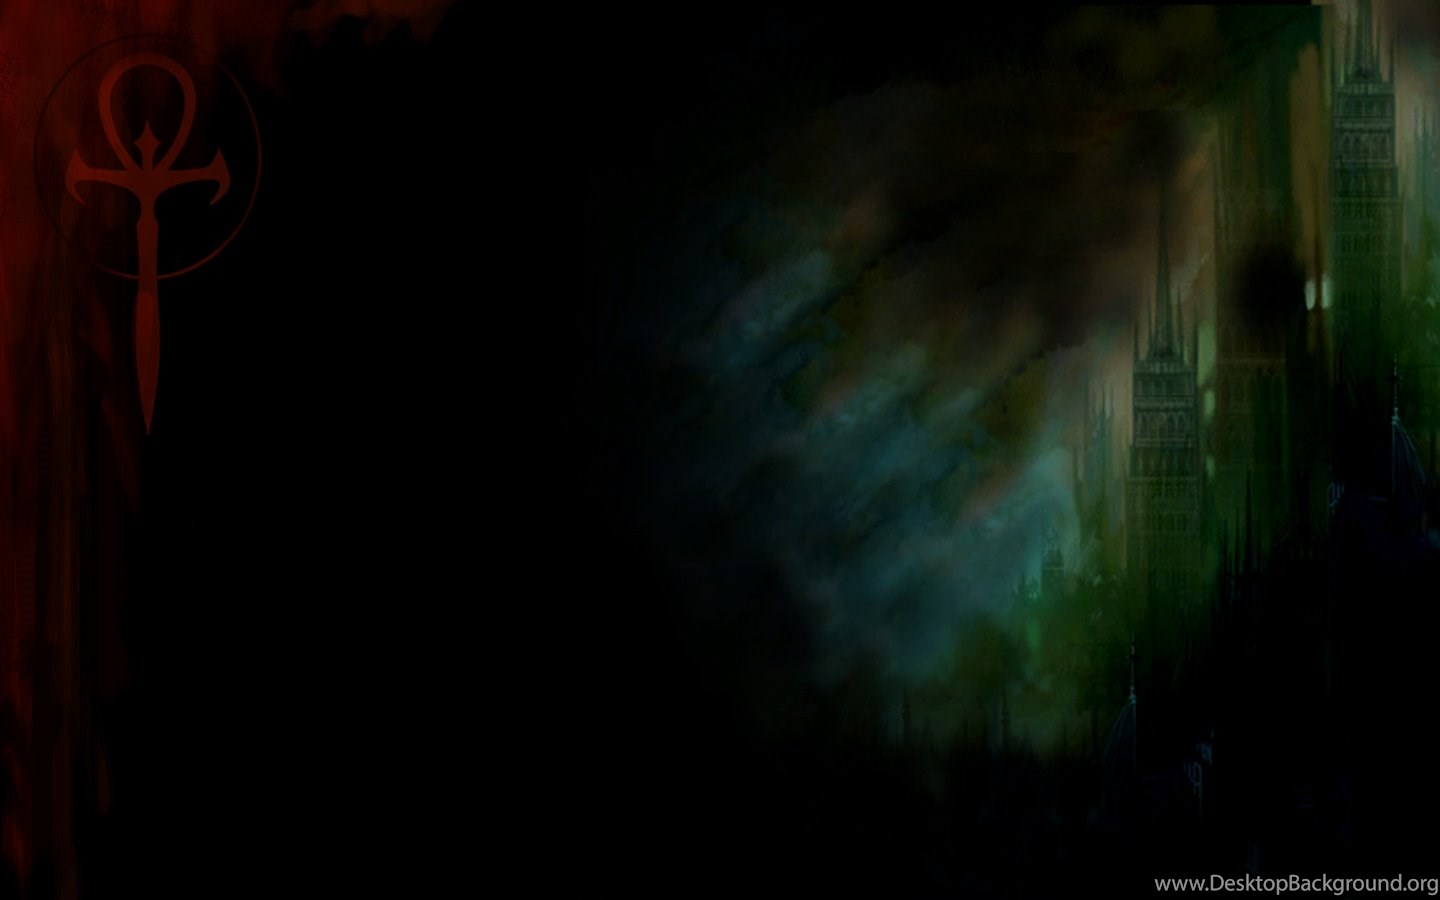 Vampire The Masquerade Backgrounds: Vampire The Masquerade: Bloodlines City Wallpapers Desktop